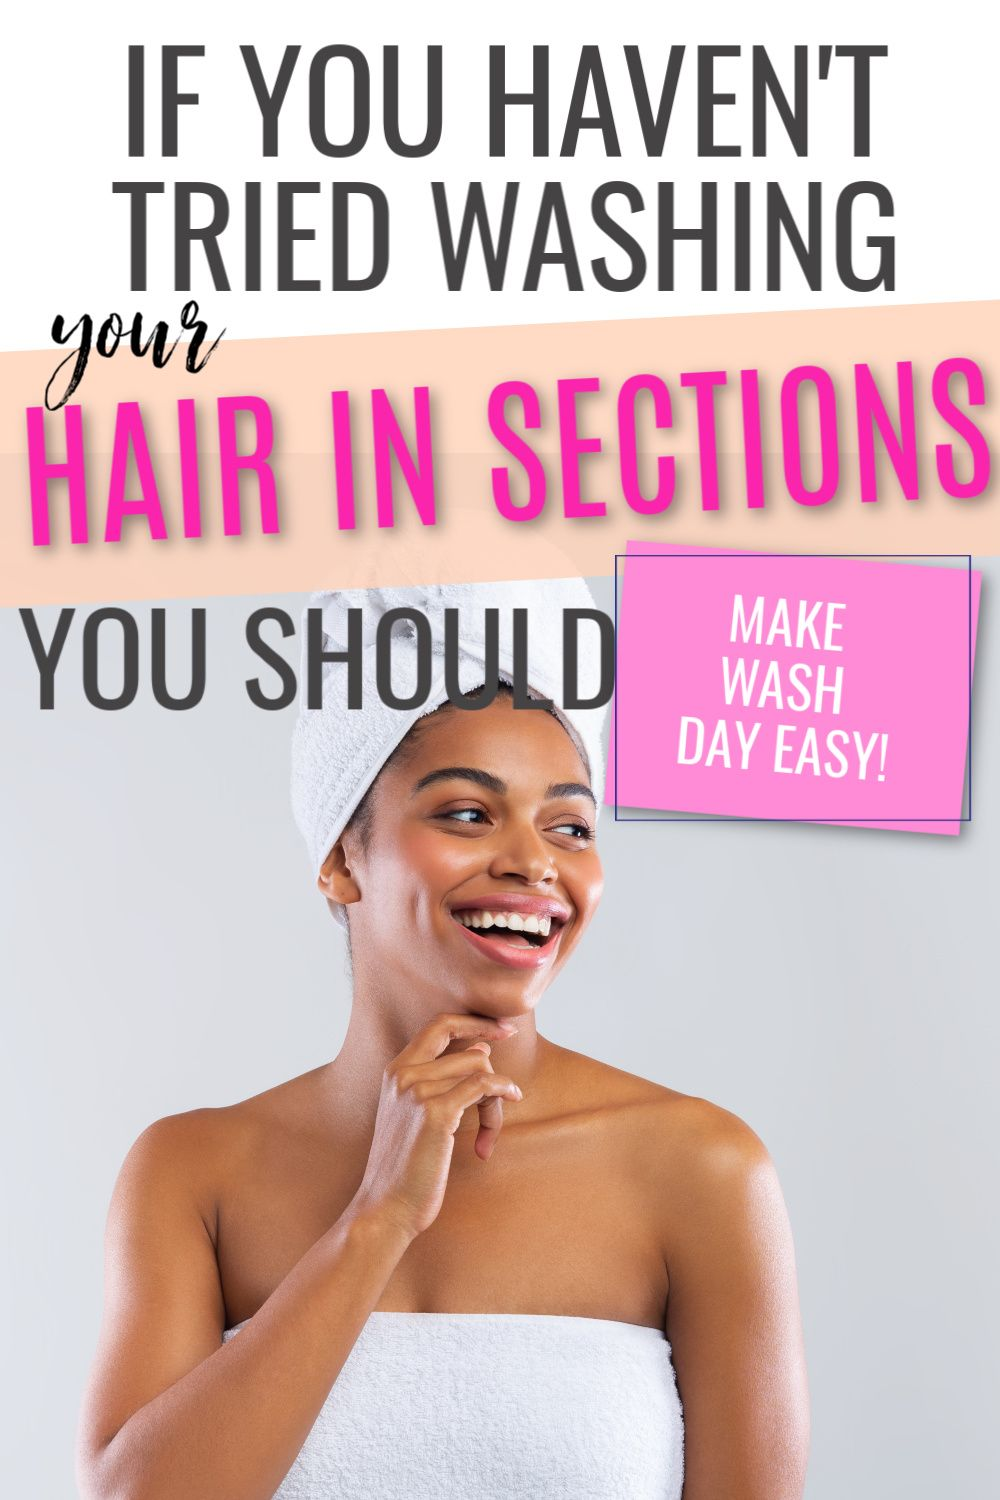 WASHING HAIR IN SECTIONS – THE SECRET SAUCE TO HAPPY HAIR